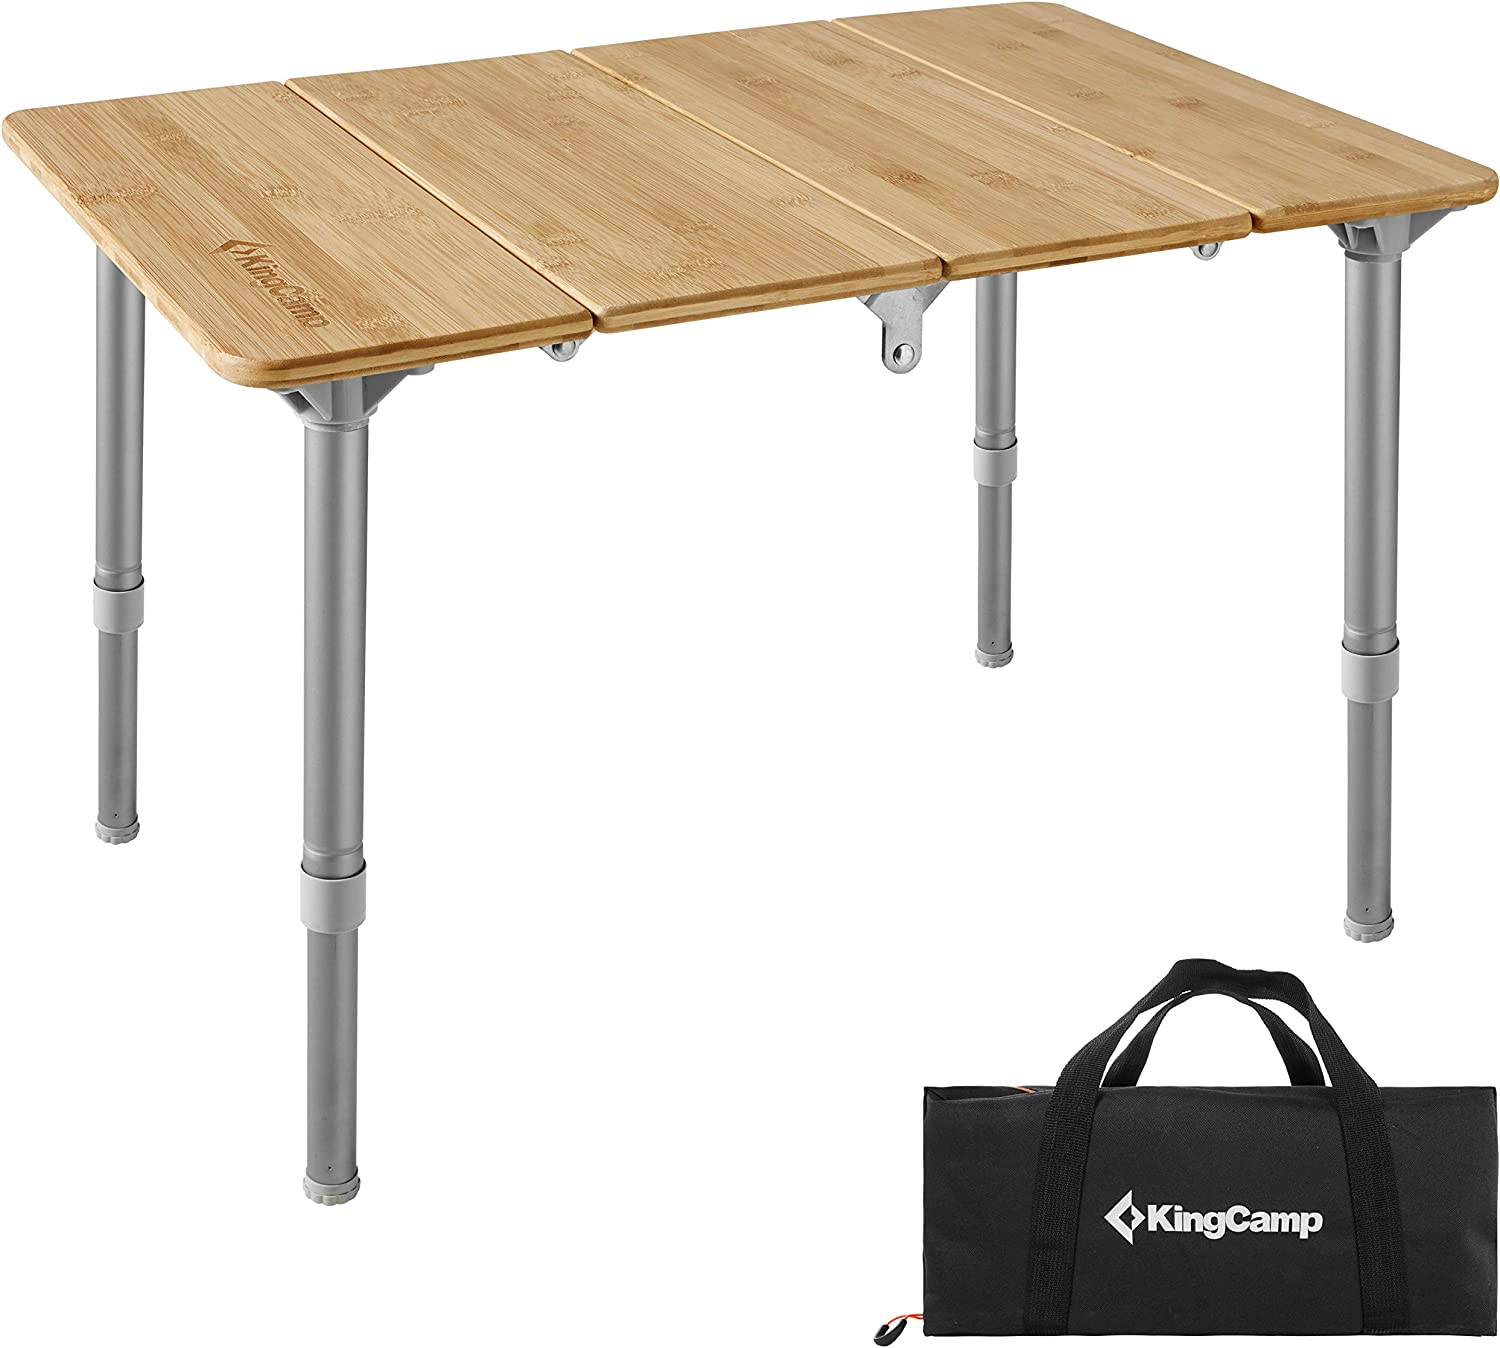 KingCamp Bamboo Folding Table Lightweight and Portable with Adjustable Height Aluminum Legs for Outdoor Camping Picnic Garden Or Indoor Home Furniture Table